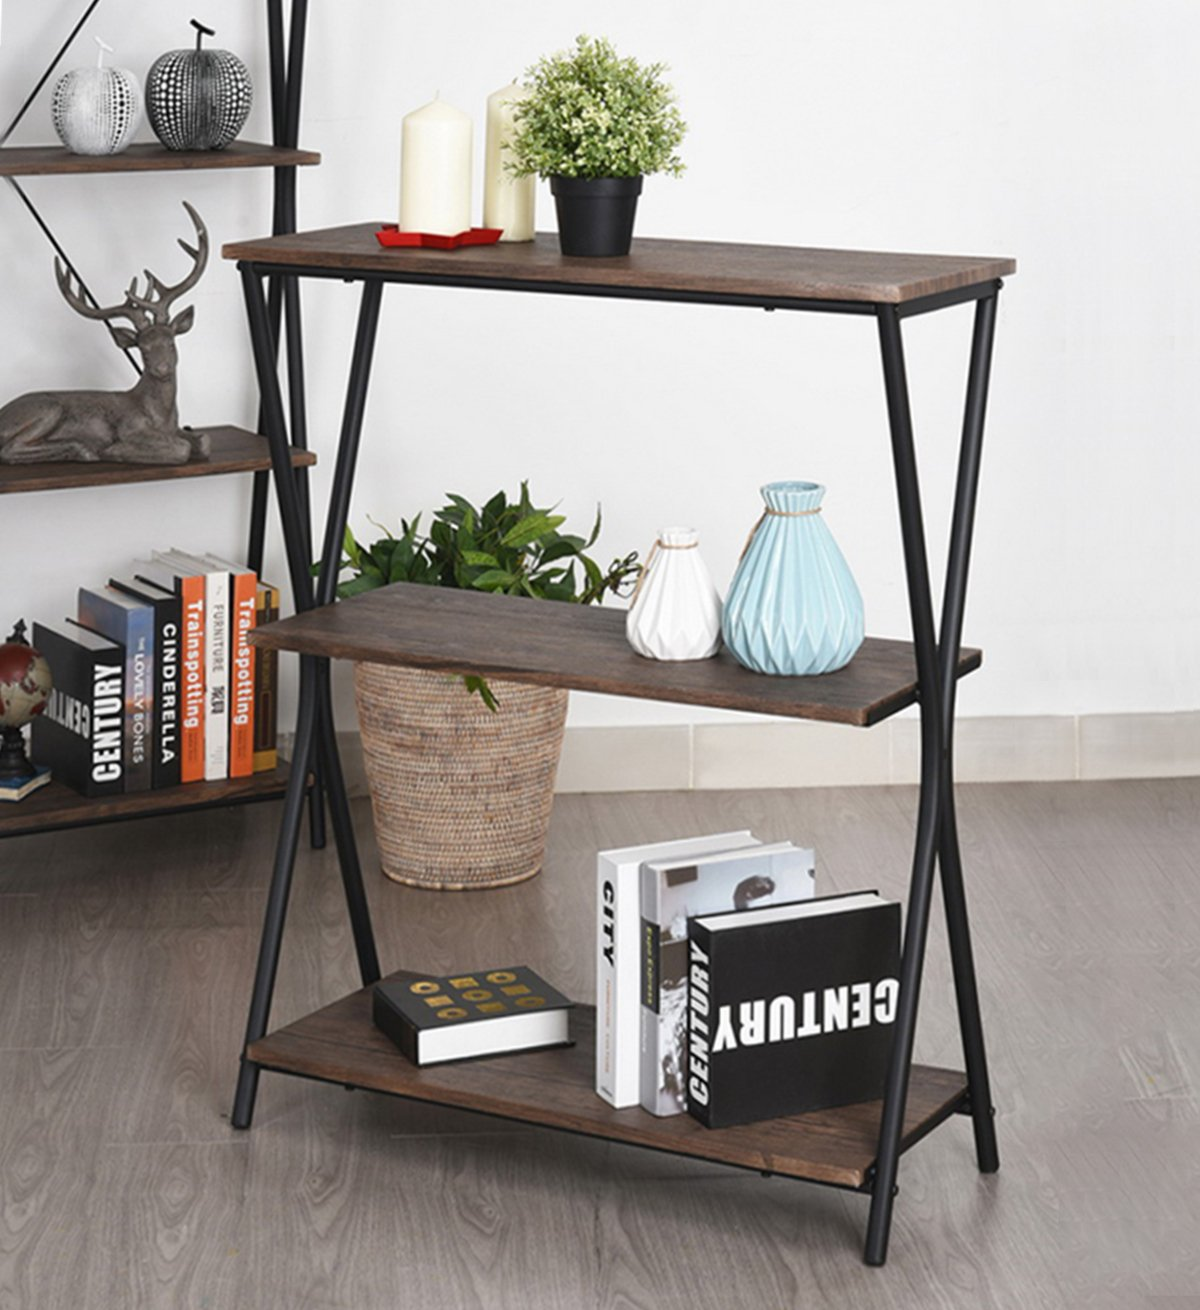 Aingoo 3 Shelf Bookcase, Vintage Industrial Bookshelf, MDF with Metal Frame Shelving Unit, Home Office Shelf Organizer, Multipurpose Storage Shelf Display Rack (Brown)